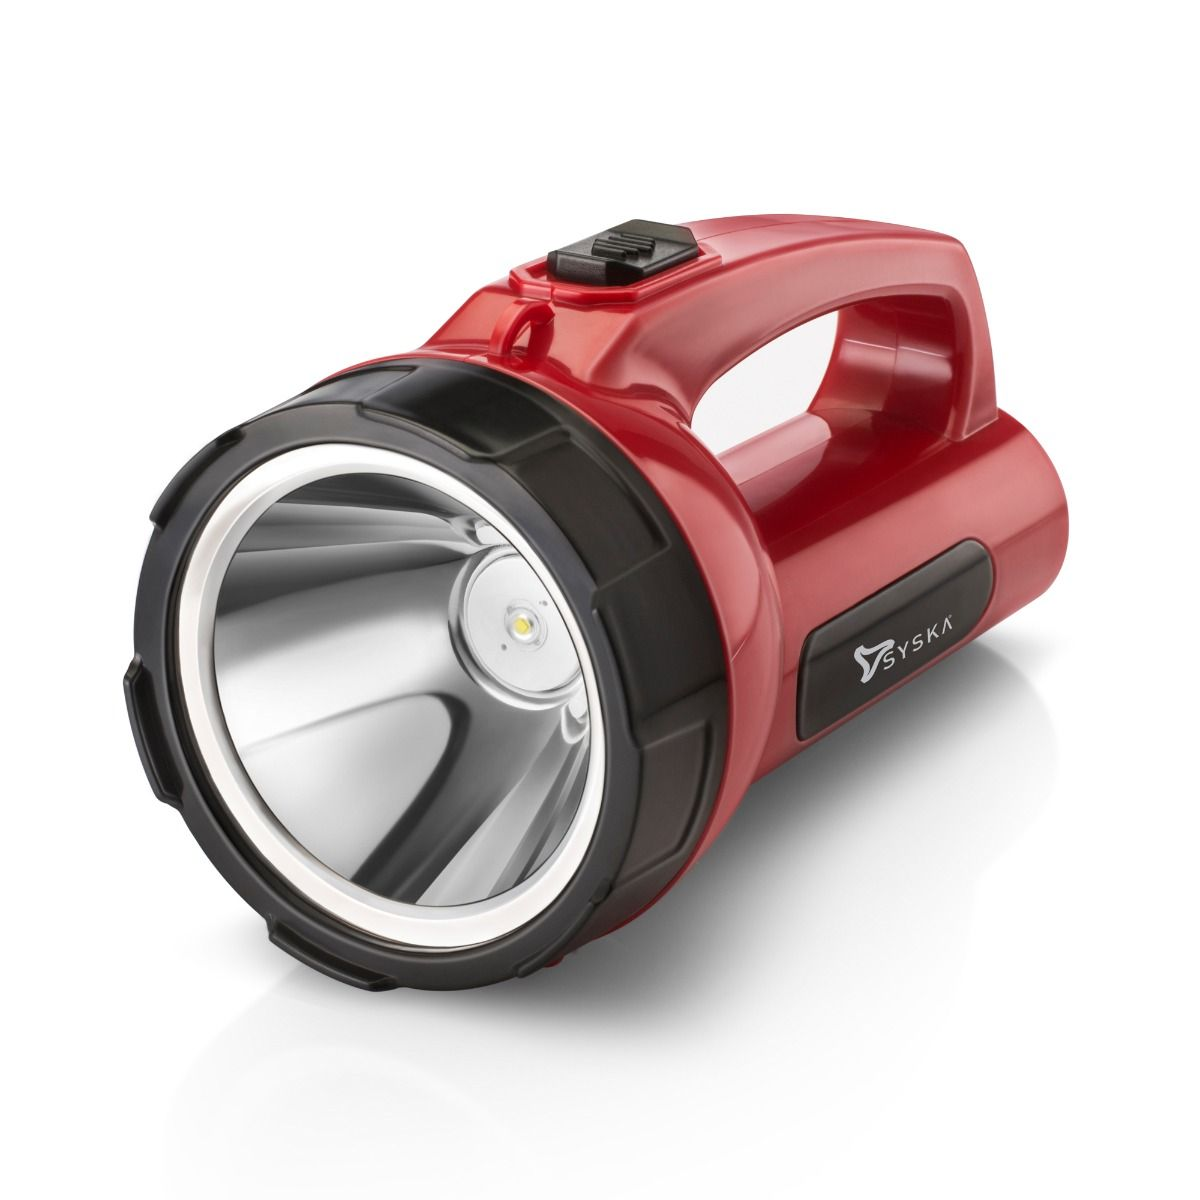 Syska 5W Starlet Torch S528L (Red)